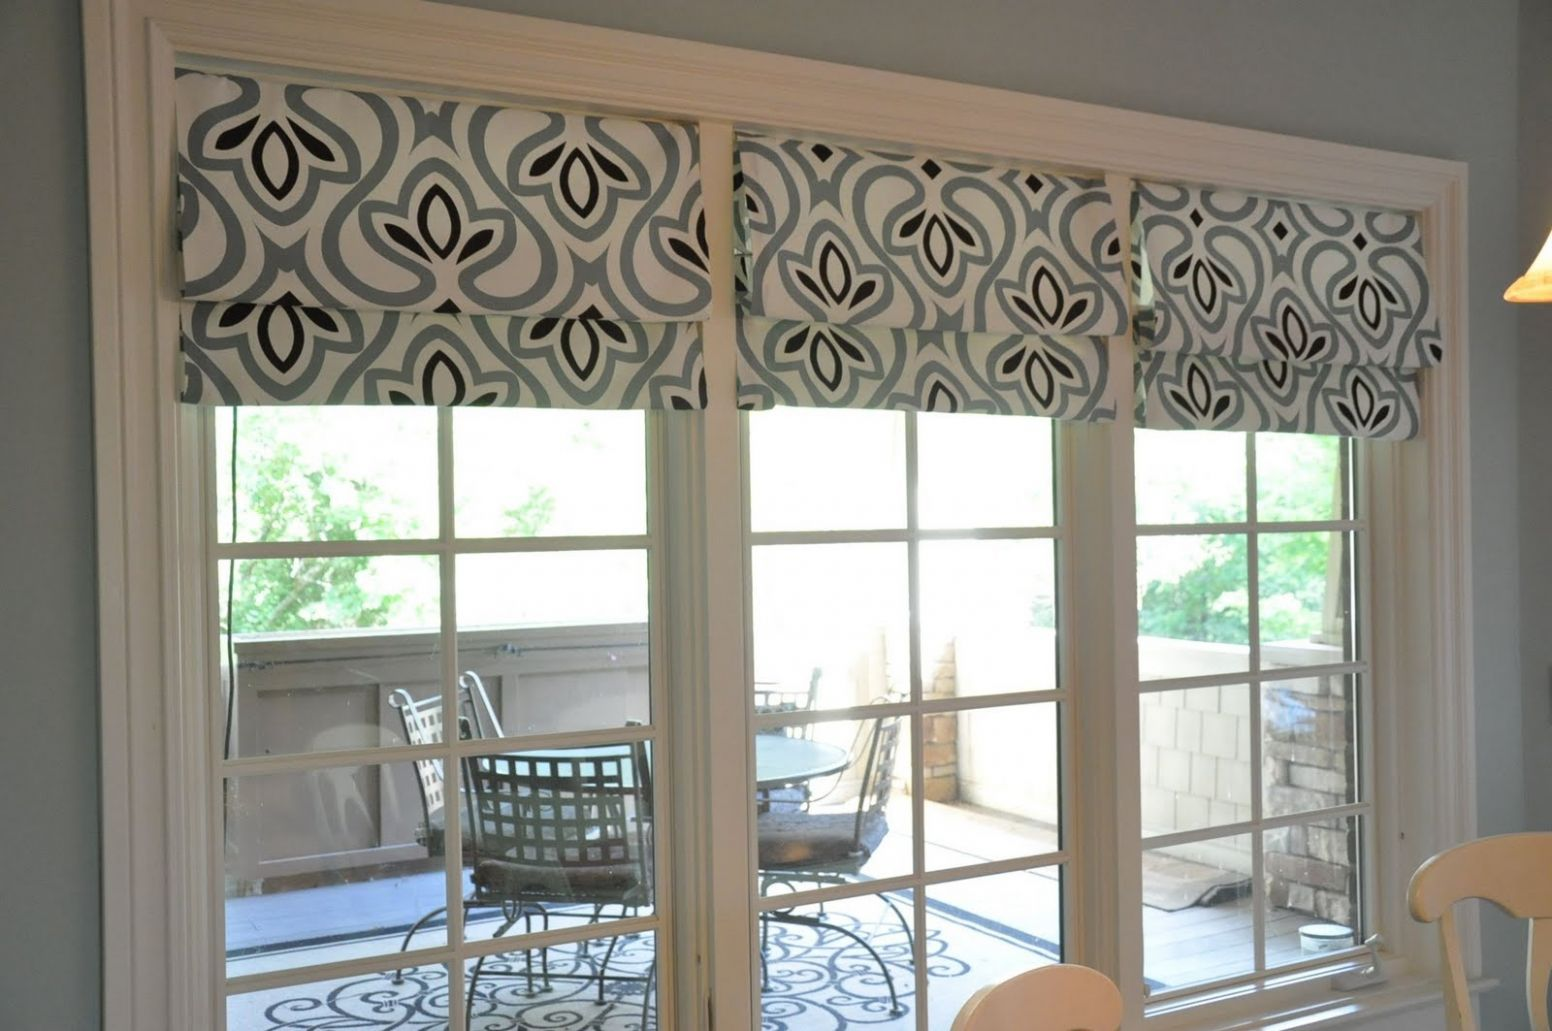 DIY Custom Roman Shades with Practical Master Classes and Photos